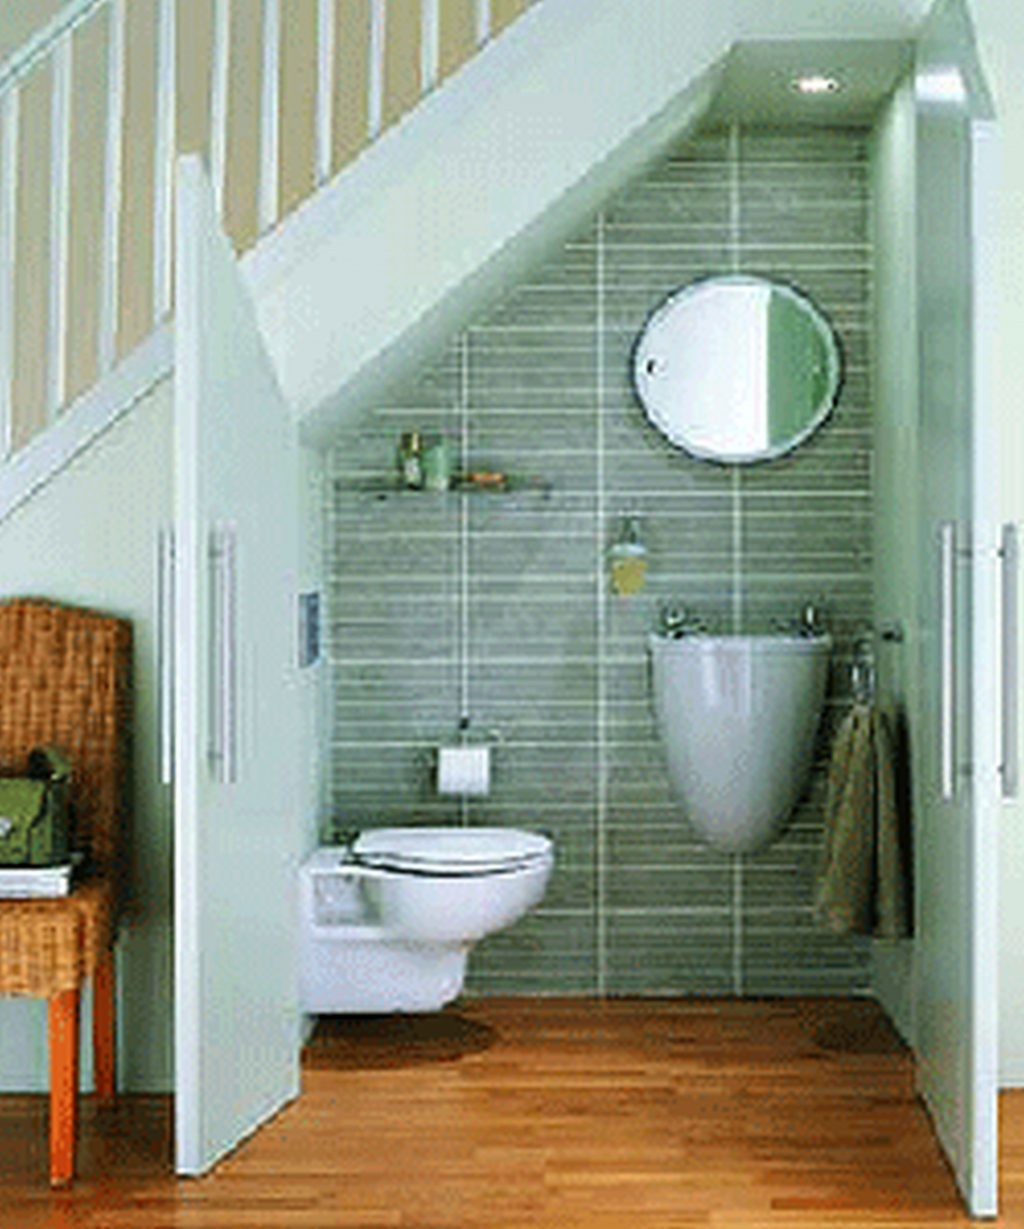 Bathroom Remodel Ideas Small Space Under Stairs Design Remodeling